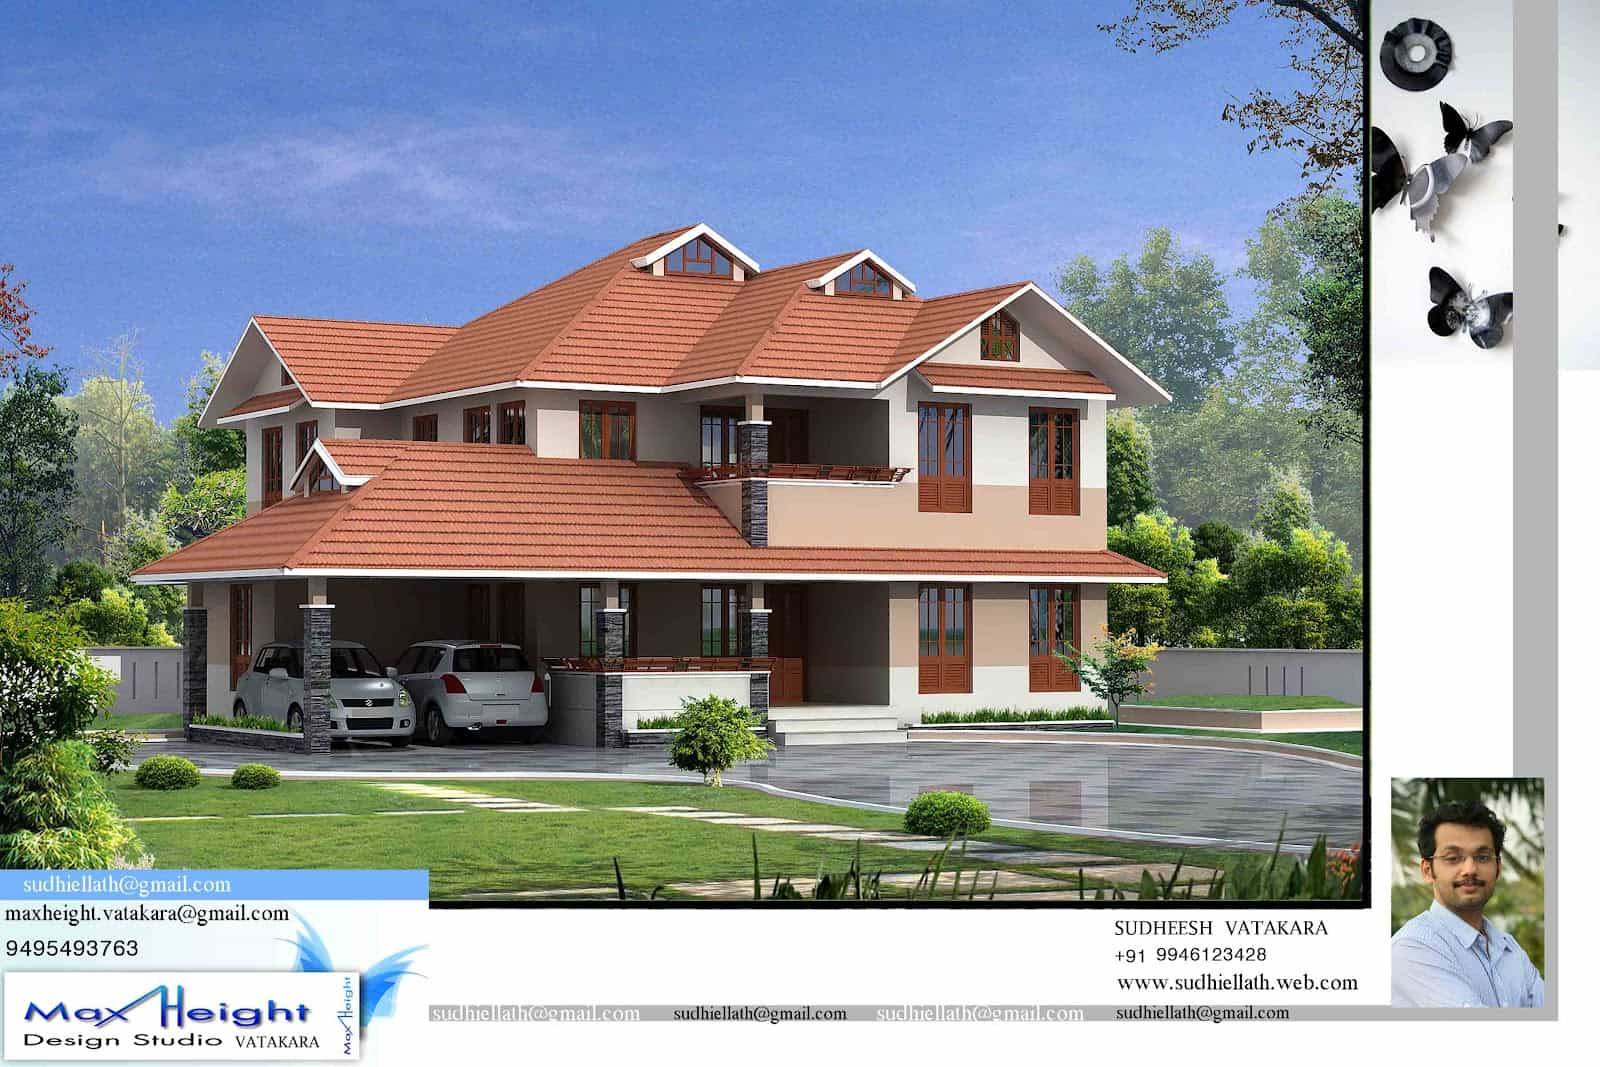 Kerala house model seaside kerala home design for Kerala house models and plans